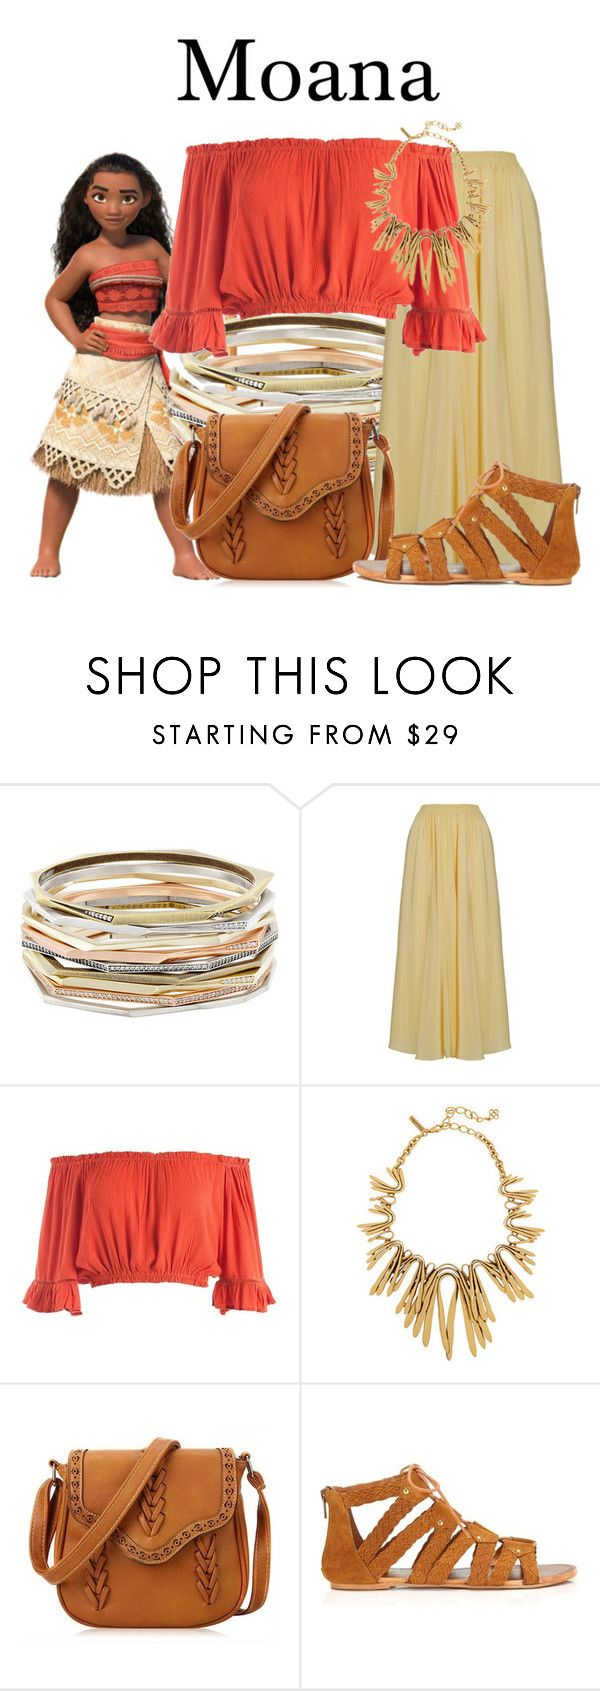 """Moana"" by megan-vanwinkle ❤ liked on Polyvore featuring Kendra Scott, Sans Souci, Miss Selfridge, disney and moana"